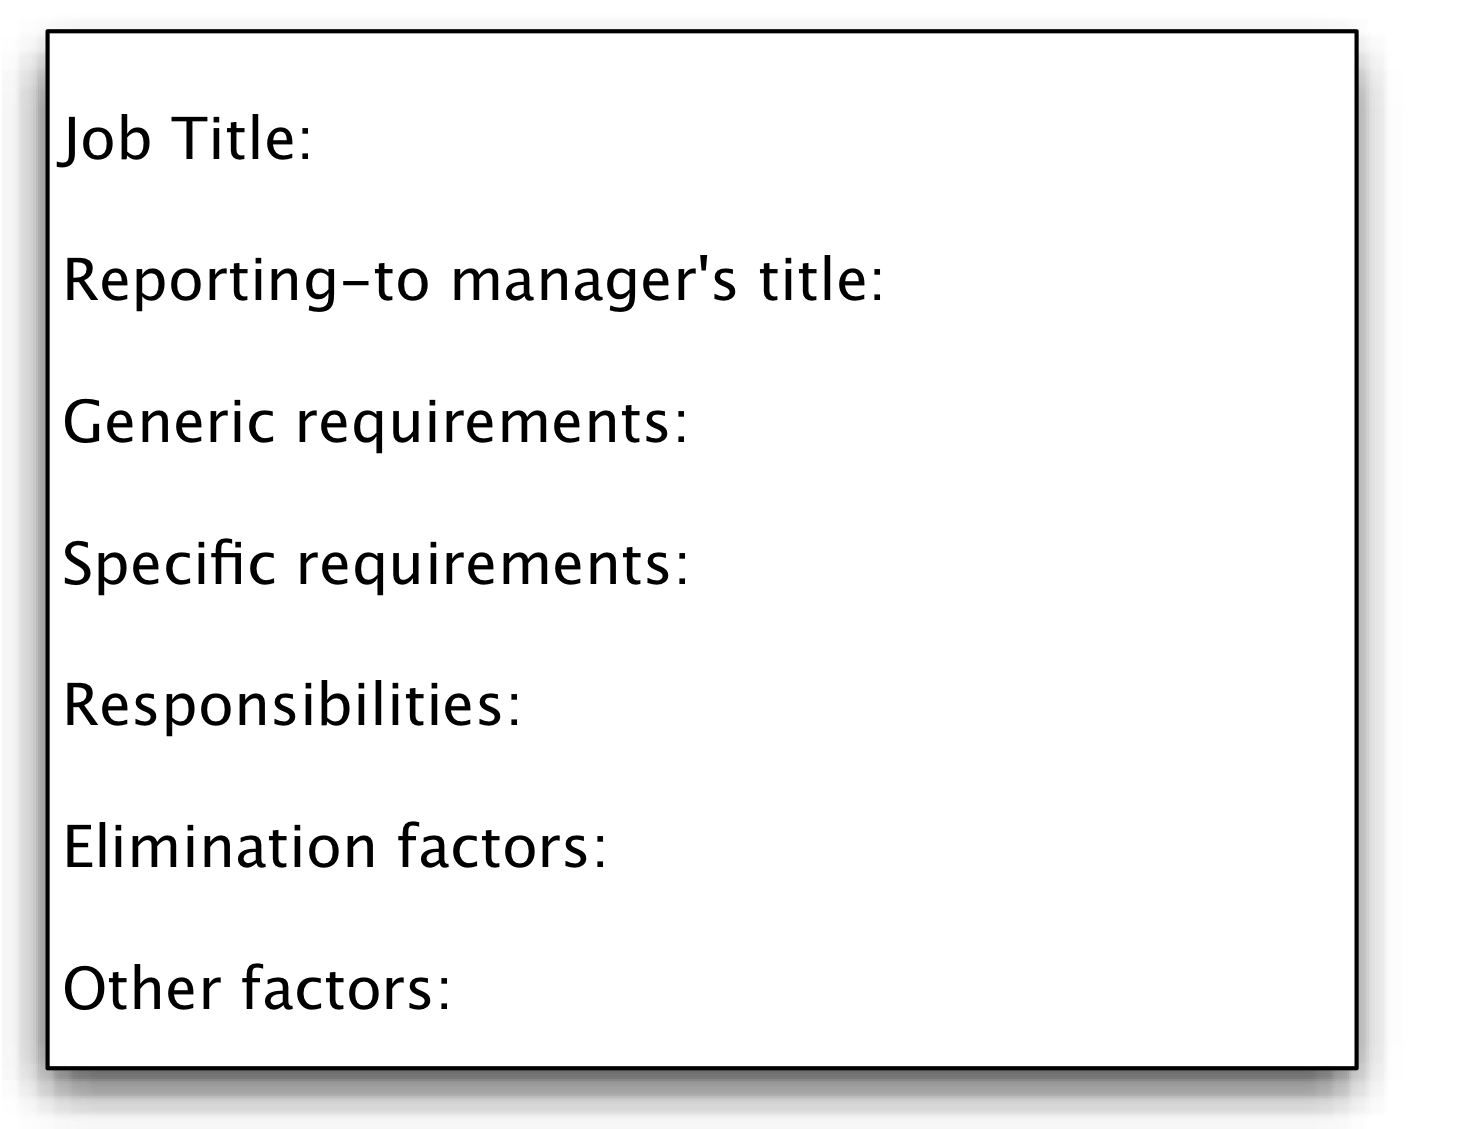 appendix a templates to use when hiring geeks that fit hiring